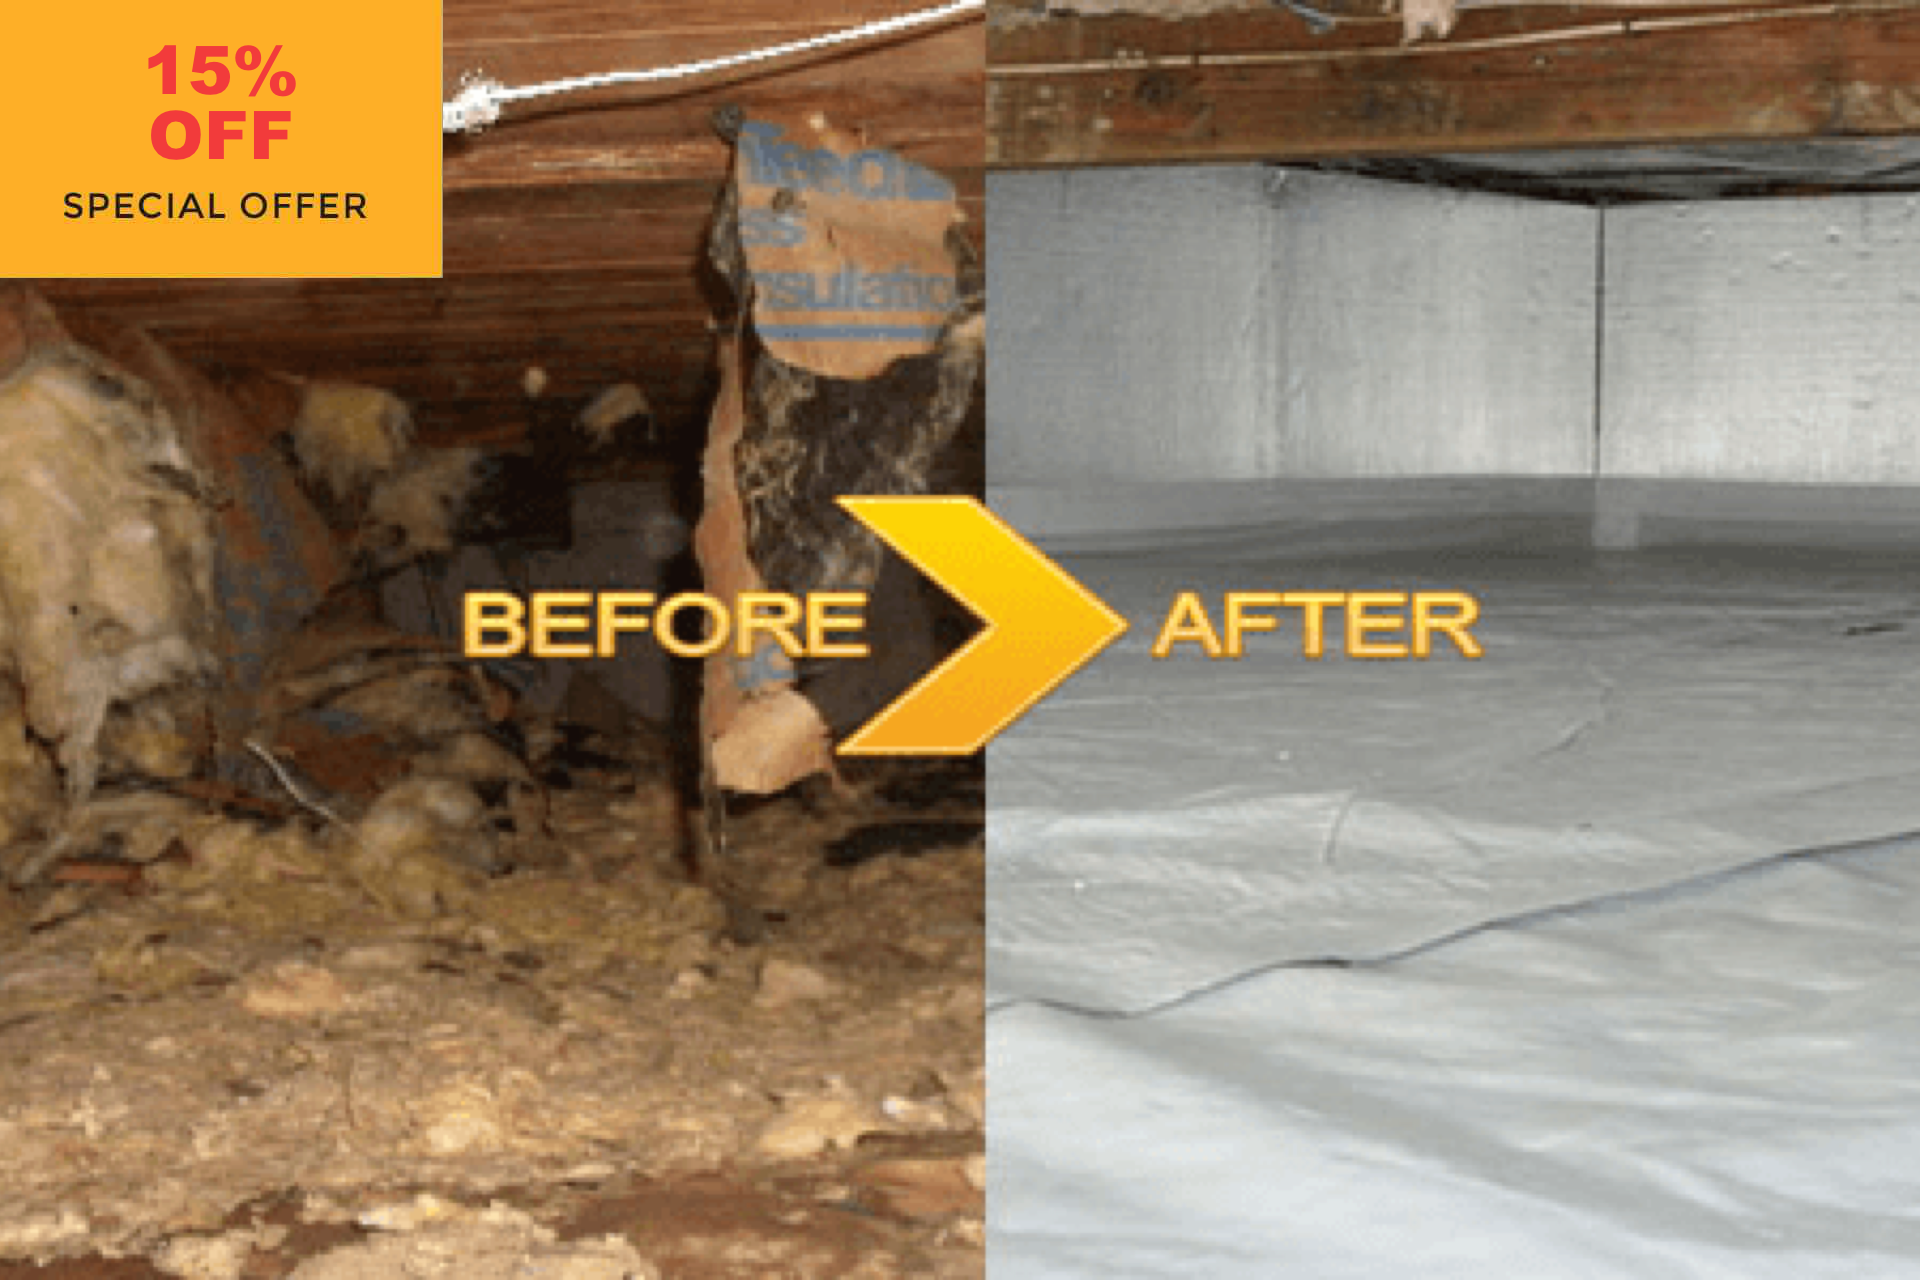 Attic & Crawl Space Clean Up